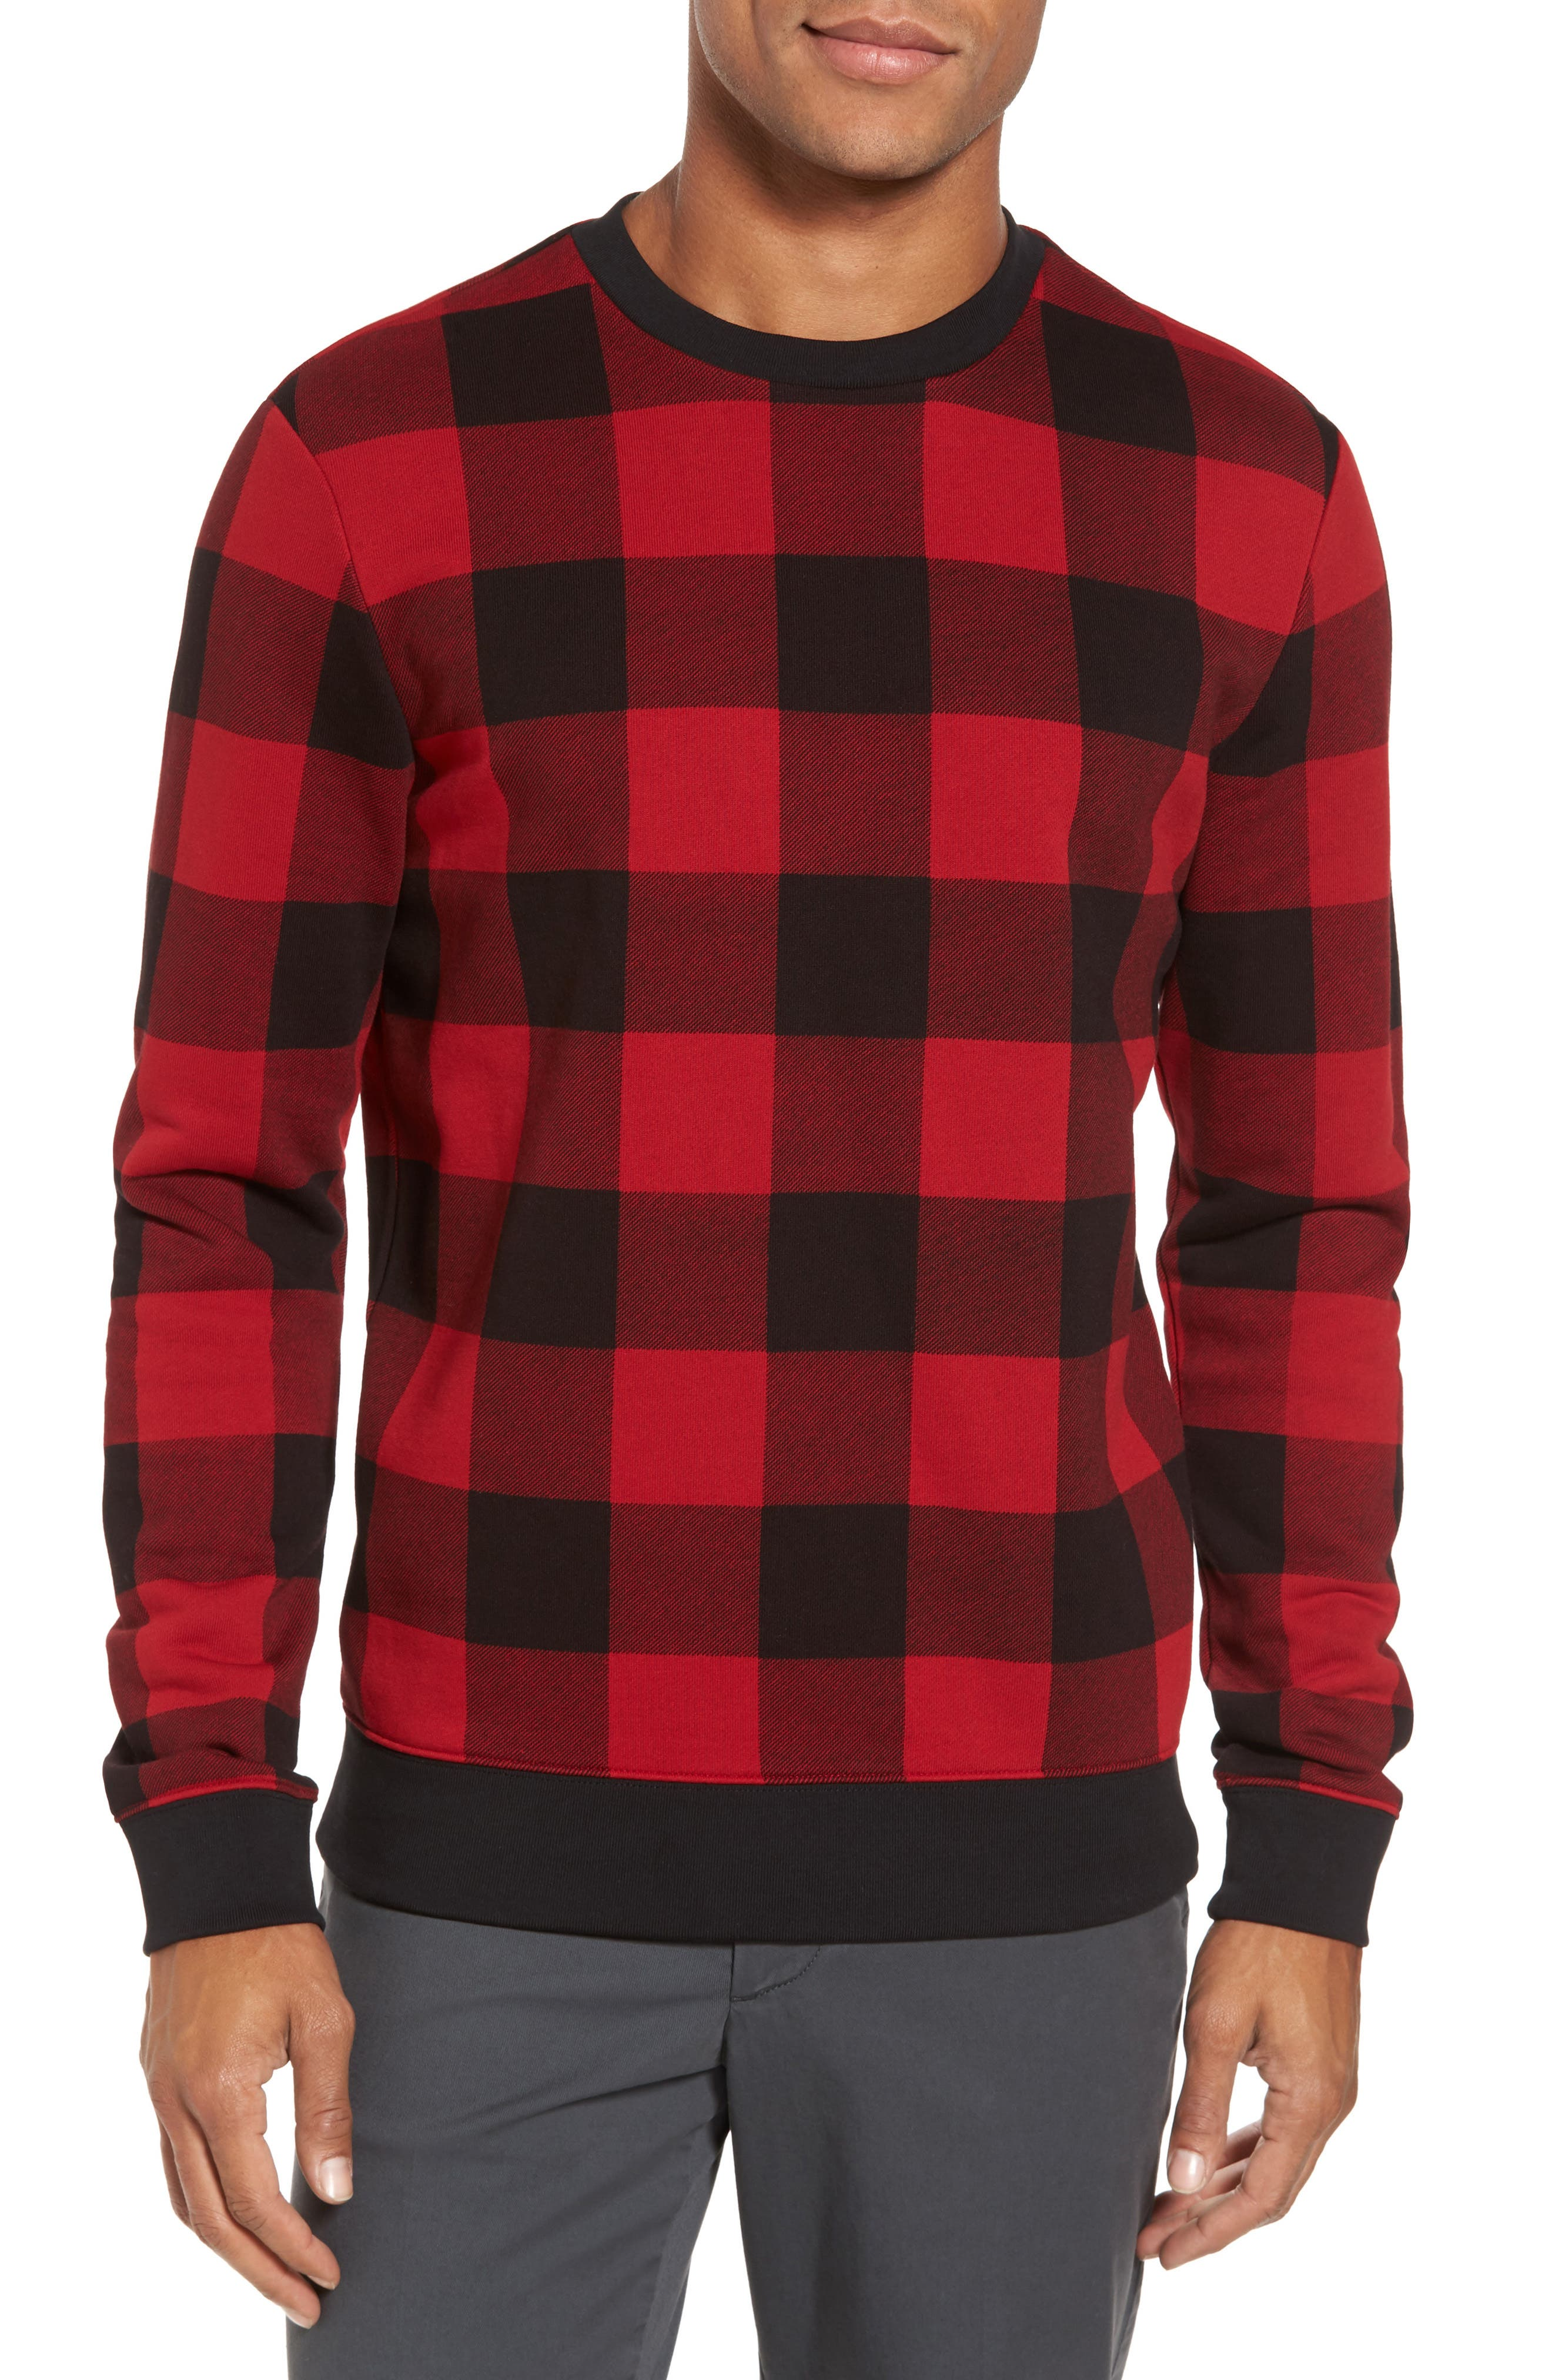 Skubic Check Slim Fit Sweater,                             Main thumbnail 1, color,                             Red